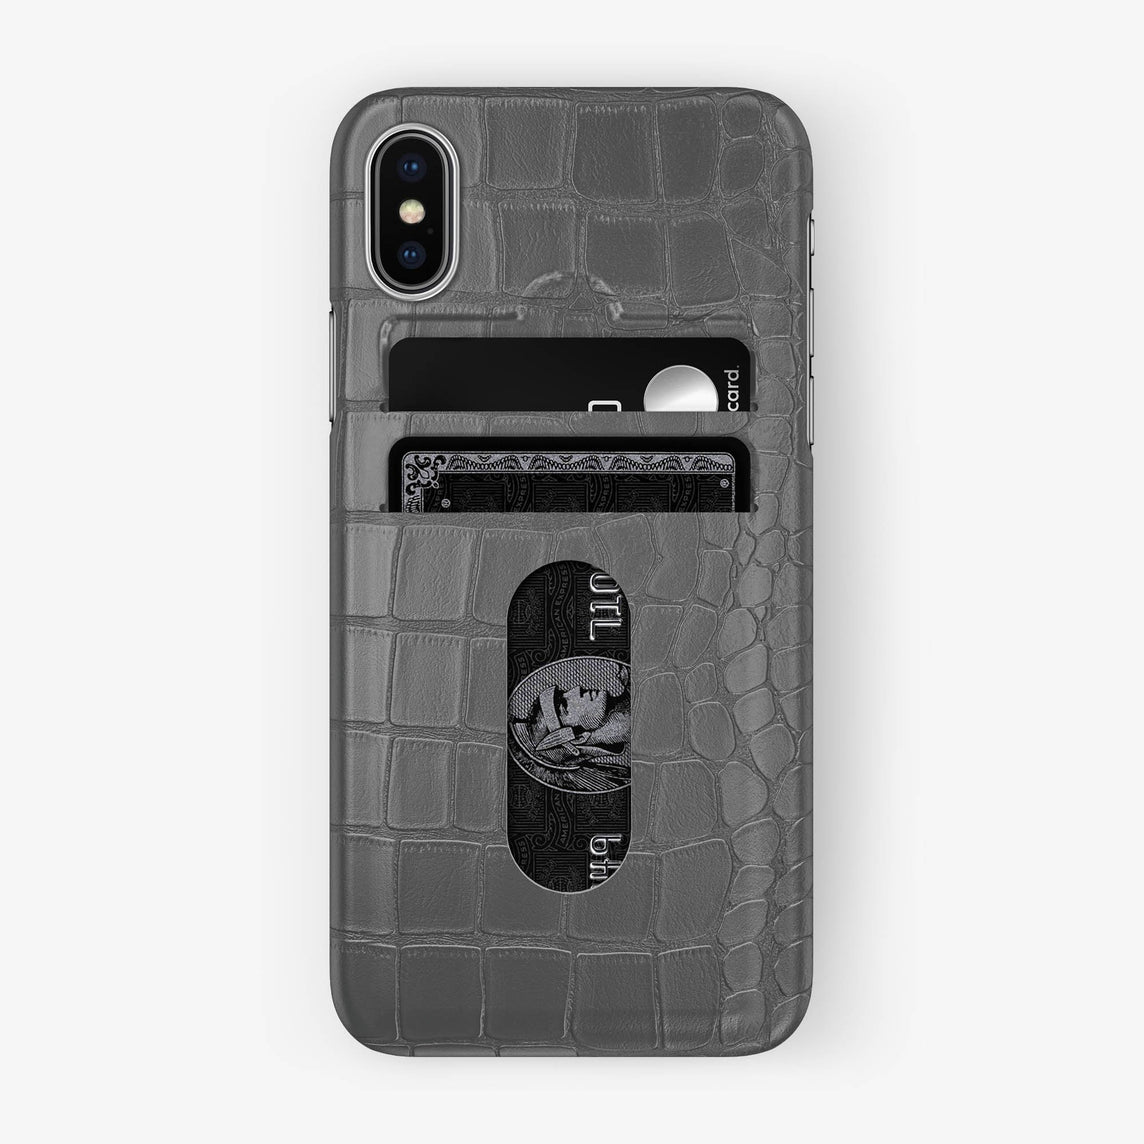 Alligator [iPhone Card Holder Case] [model:iphone-x-case] [colour:grey] [finishing:stainless-steel] - Hadoro